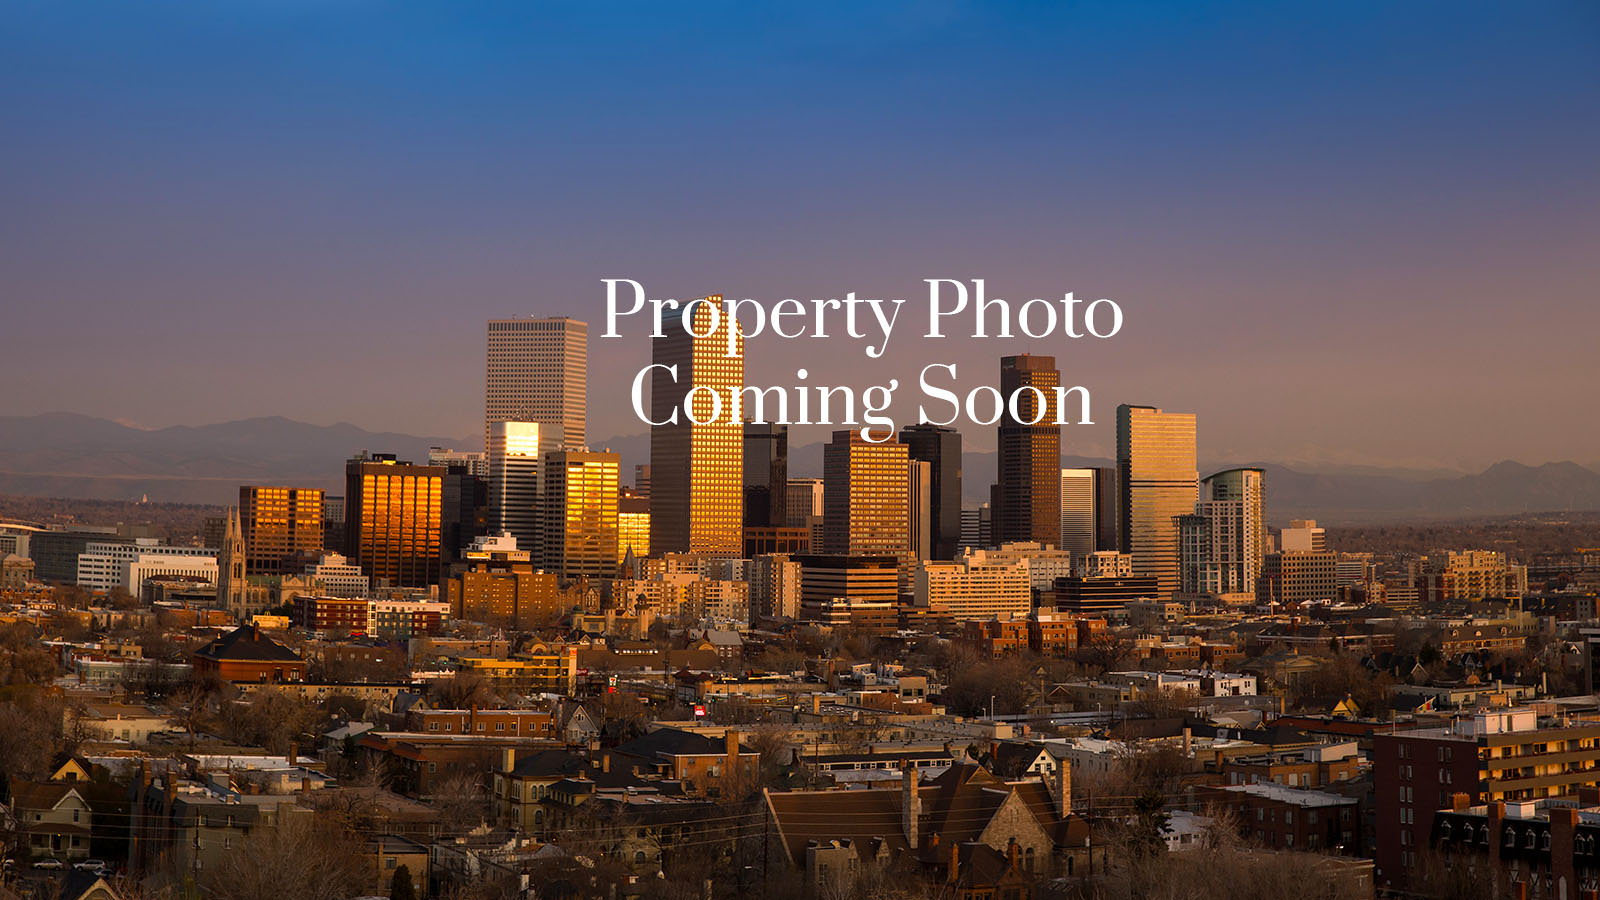 Goodman Property Photo Coming Soon